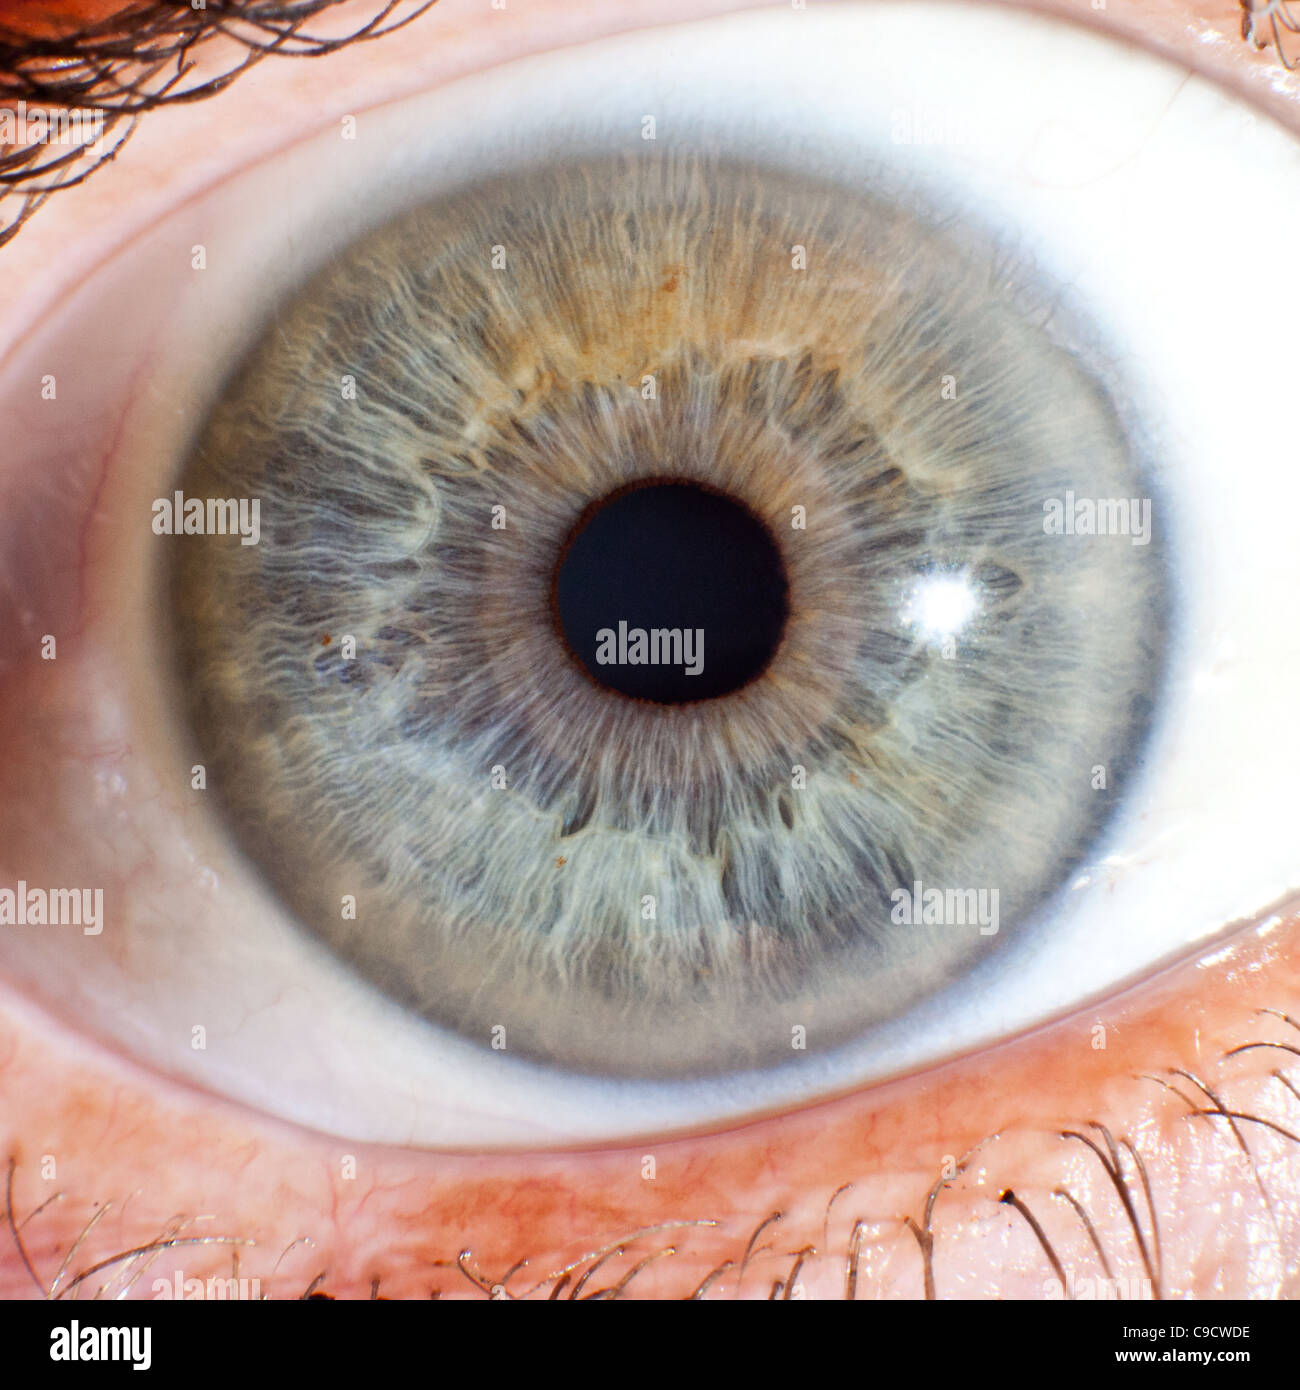 macro of eye ball iris and pupil - Stock Image